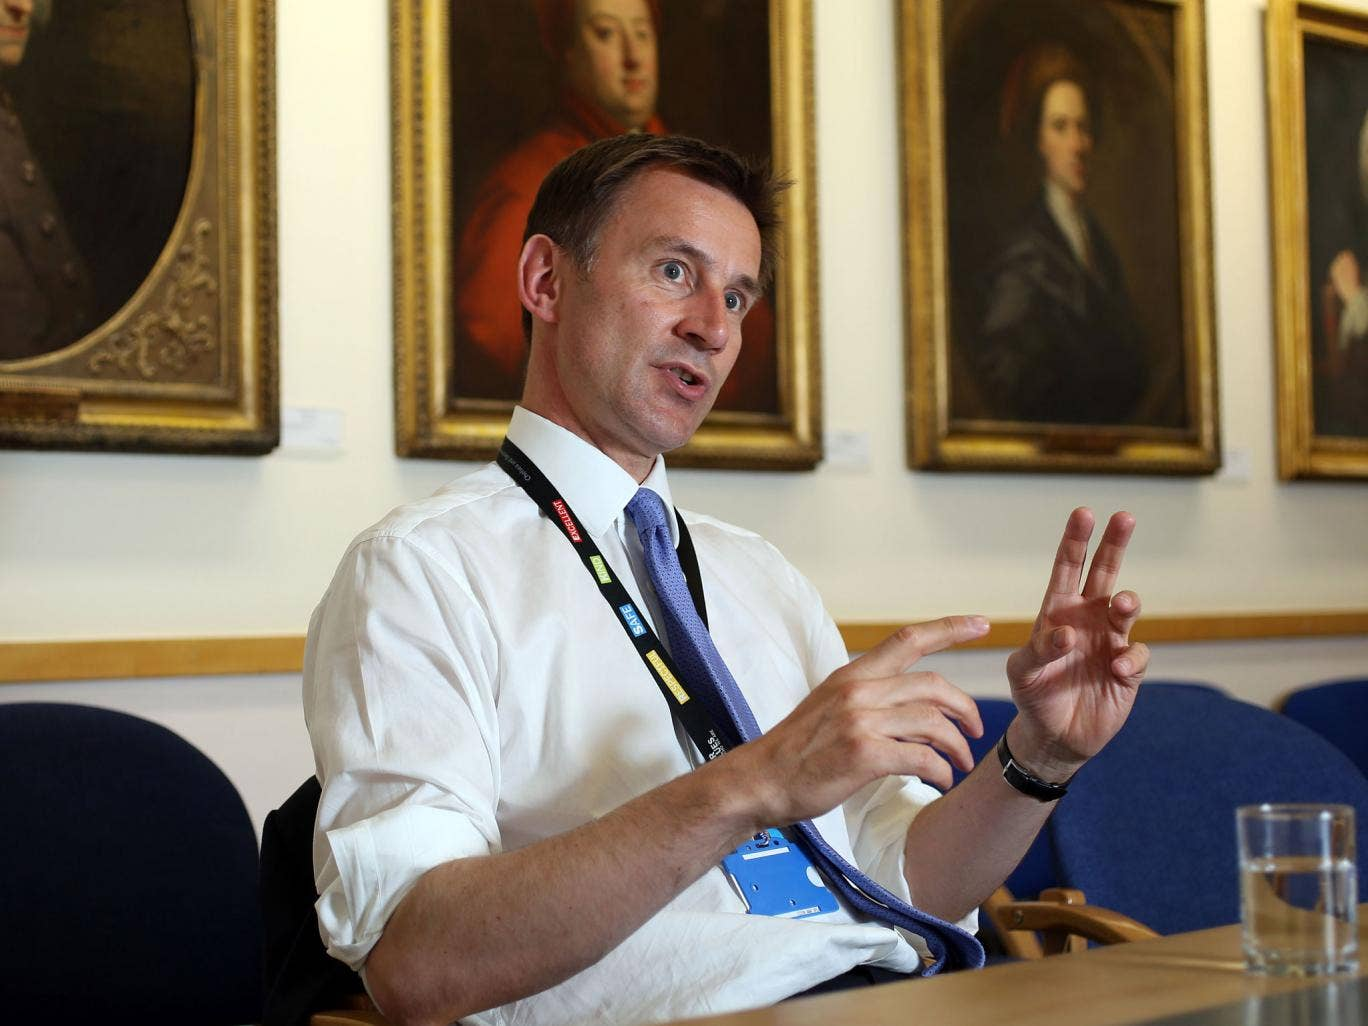 Jeremy Hunt wants to rethink how the NHS offers care